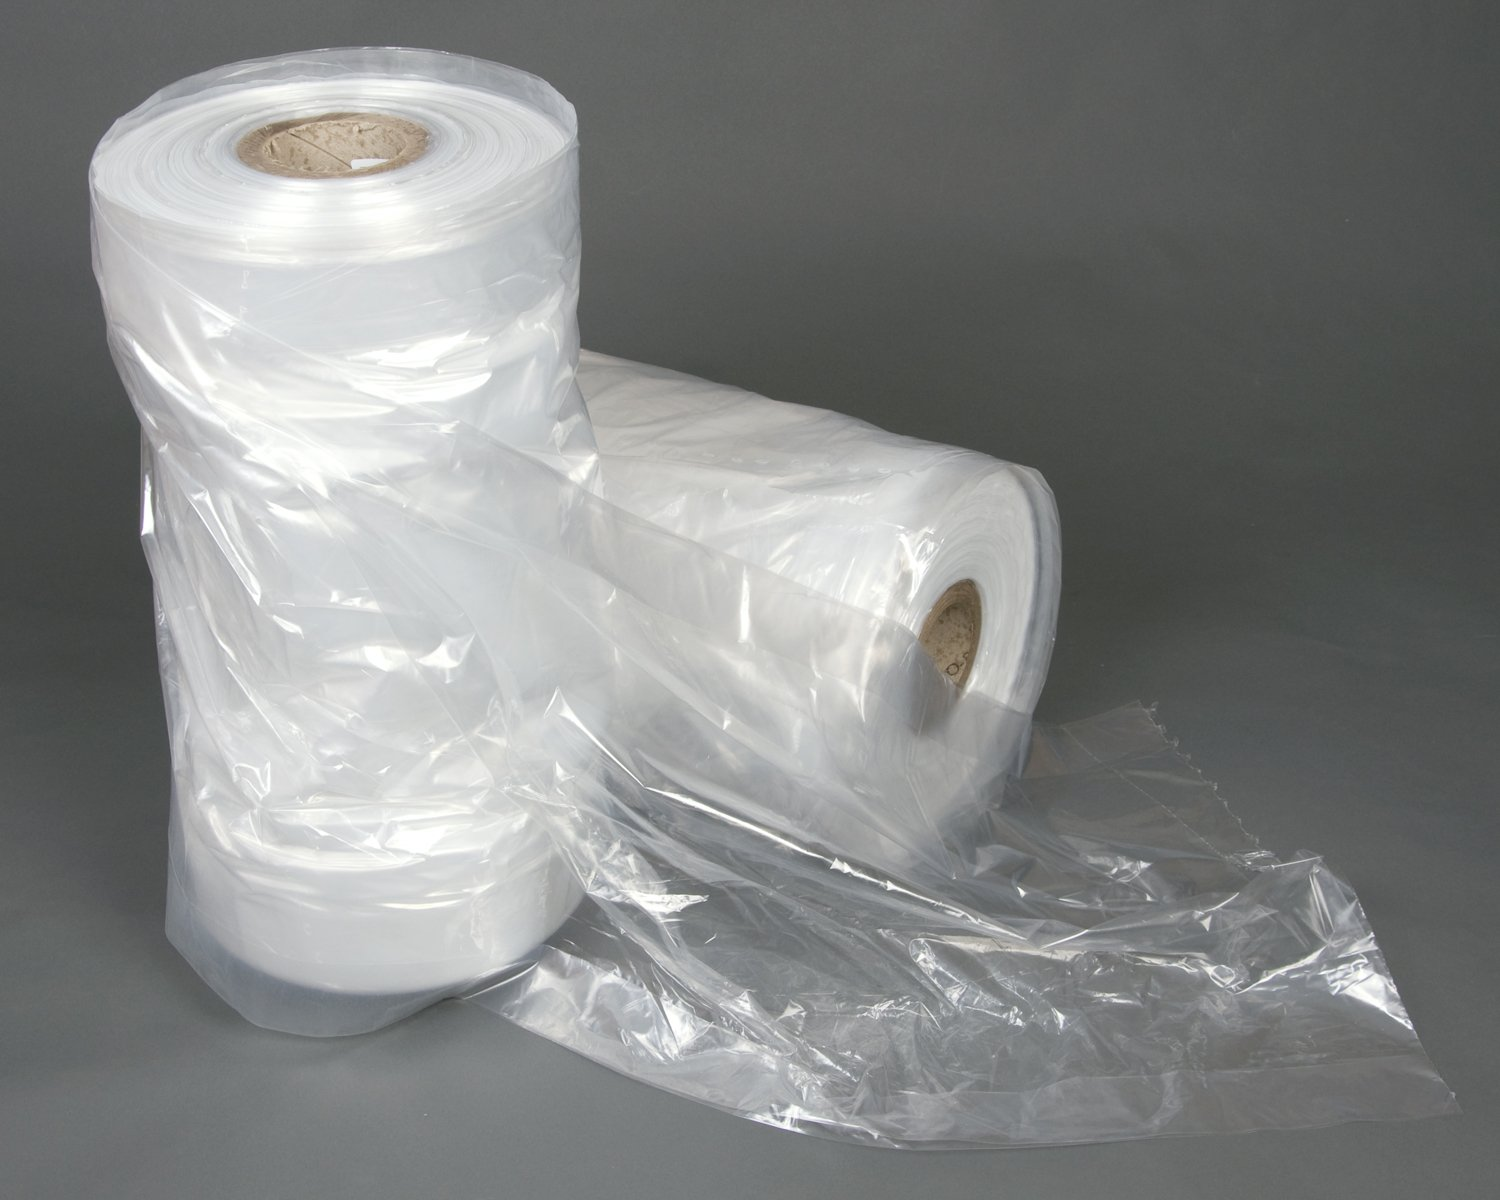 Multi Listing 50, 24 x 72 Polythene Garment Covers Dry Cleaner Bags Quantity: